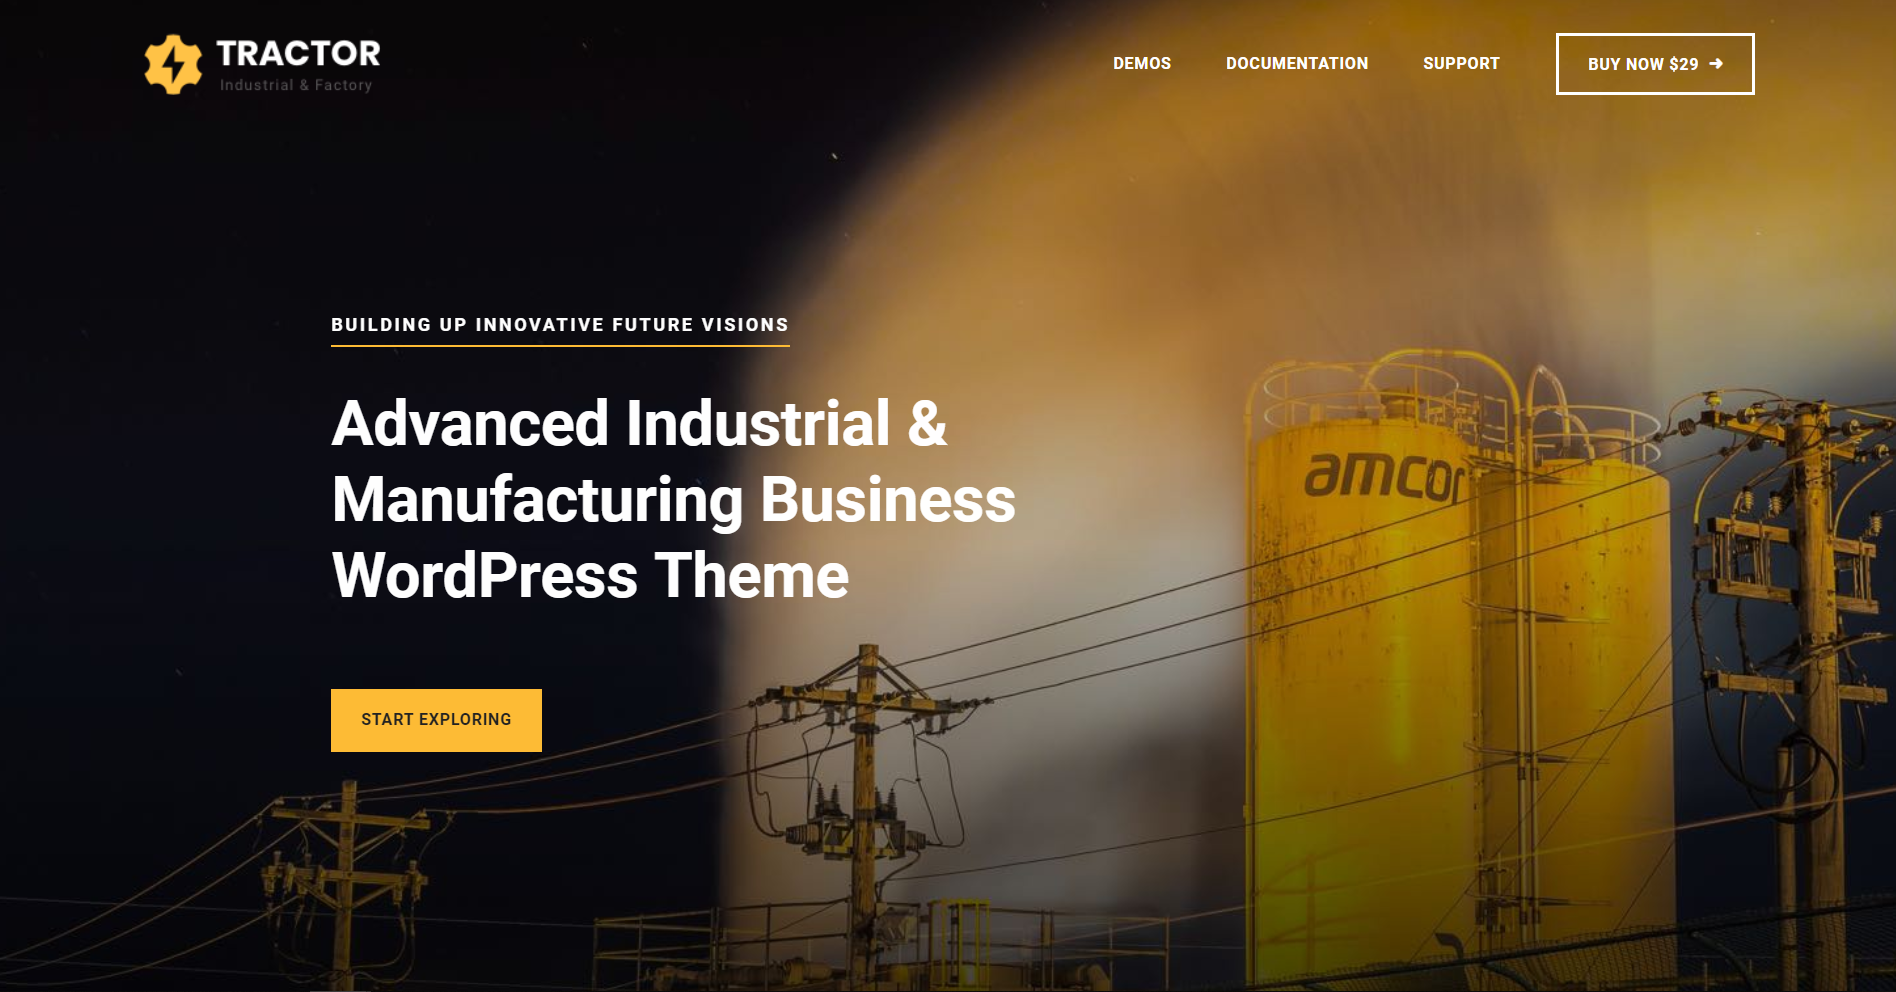 4. Tractor - Industrial Manufacturing WordPress